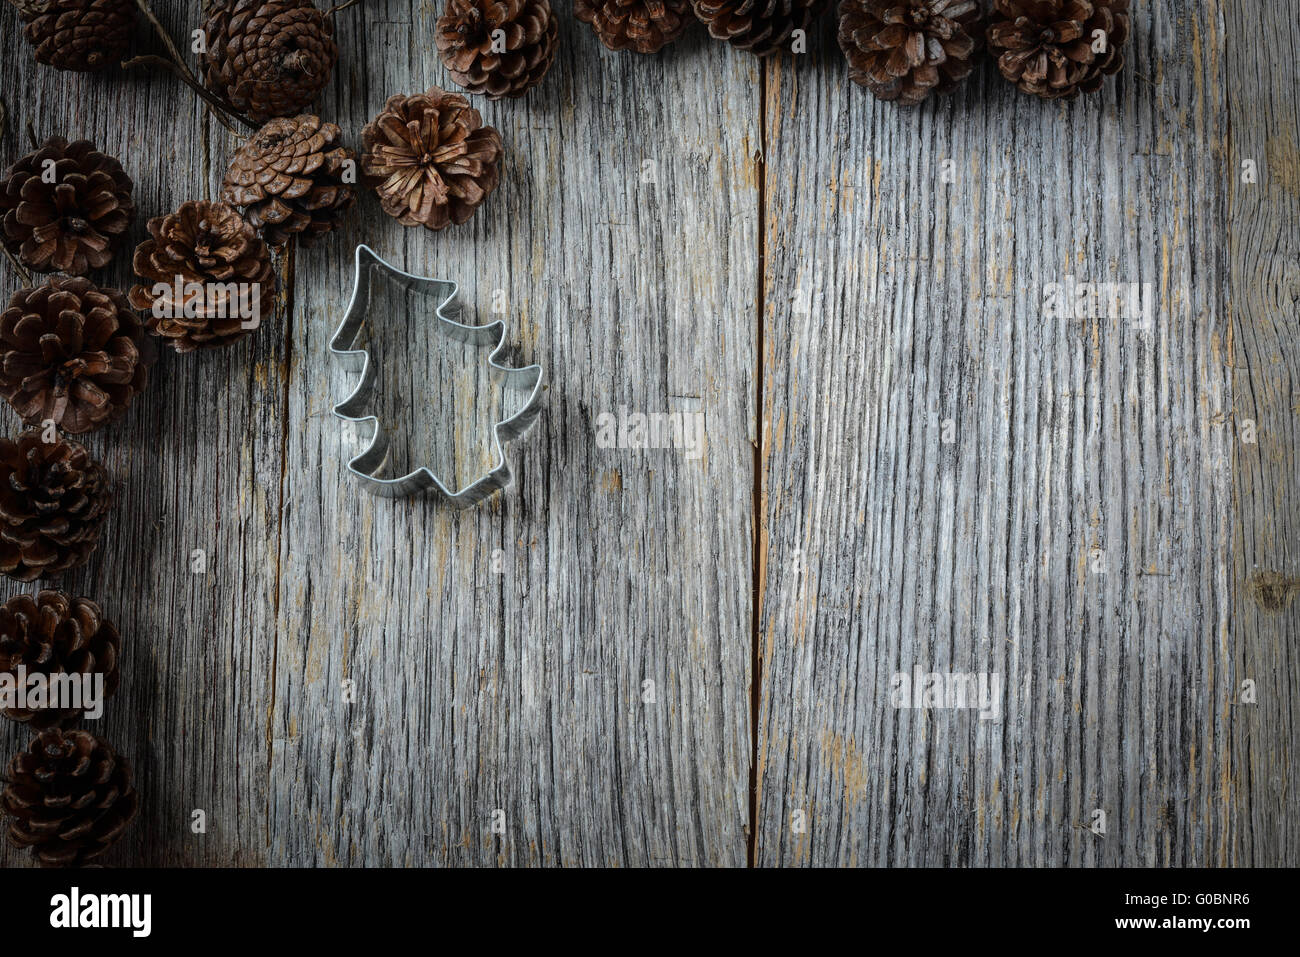 Pine Cones And Christmas Tree On A Rustic Wood Background